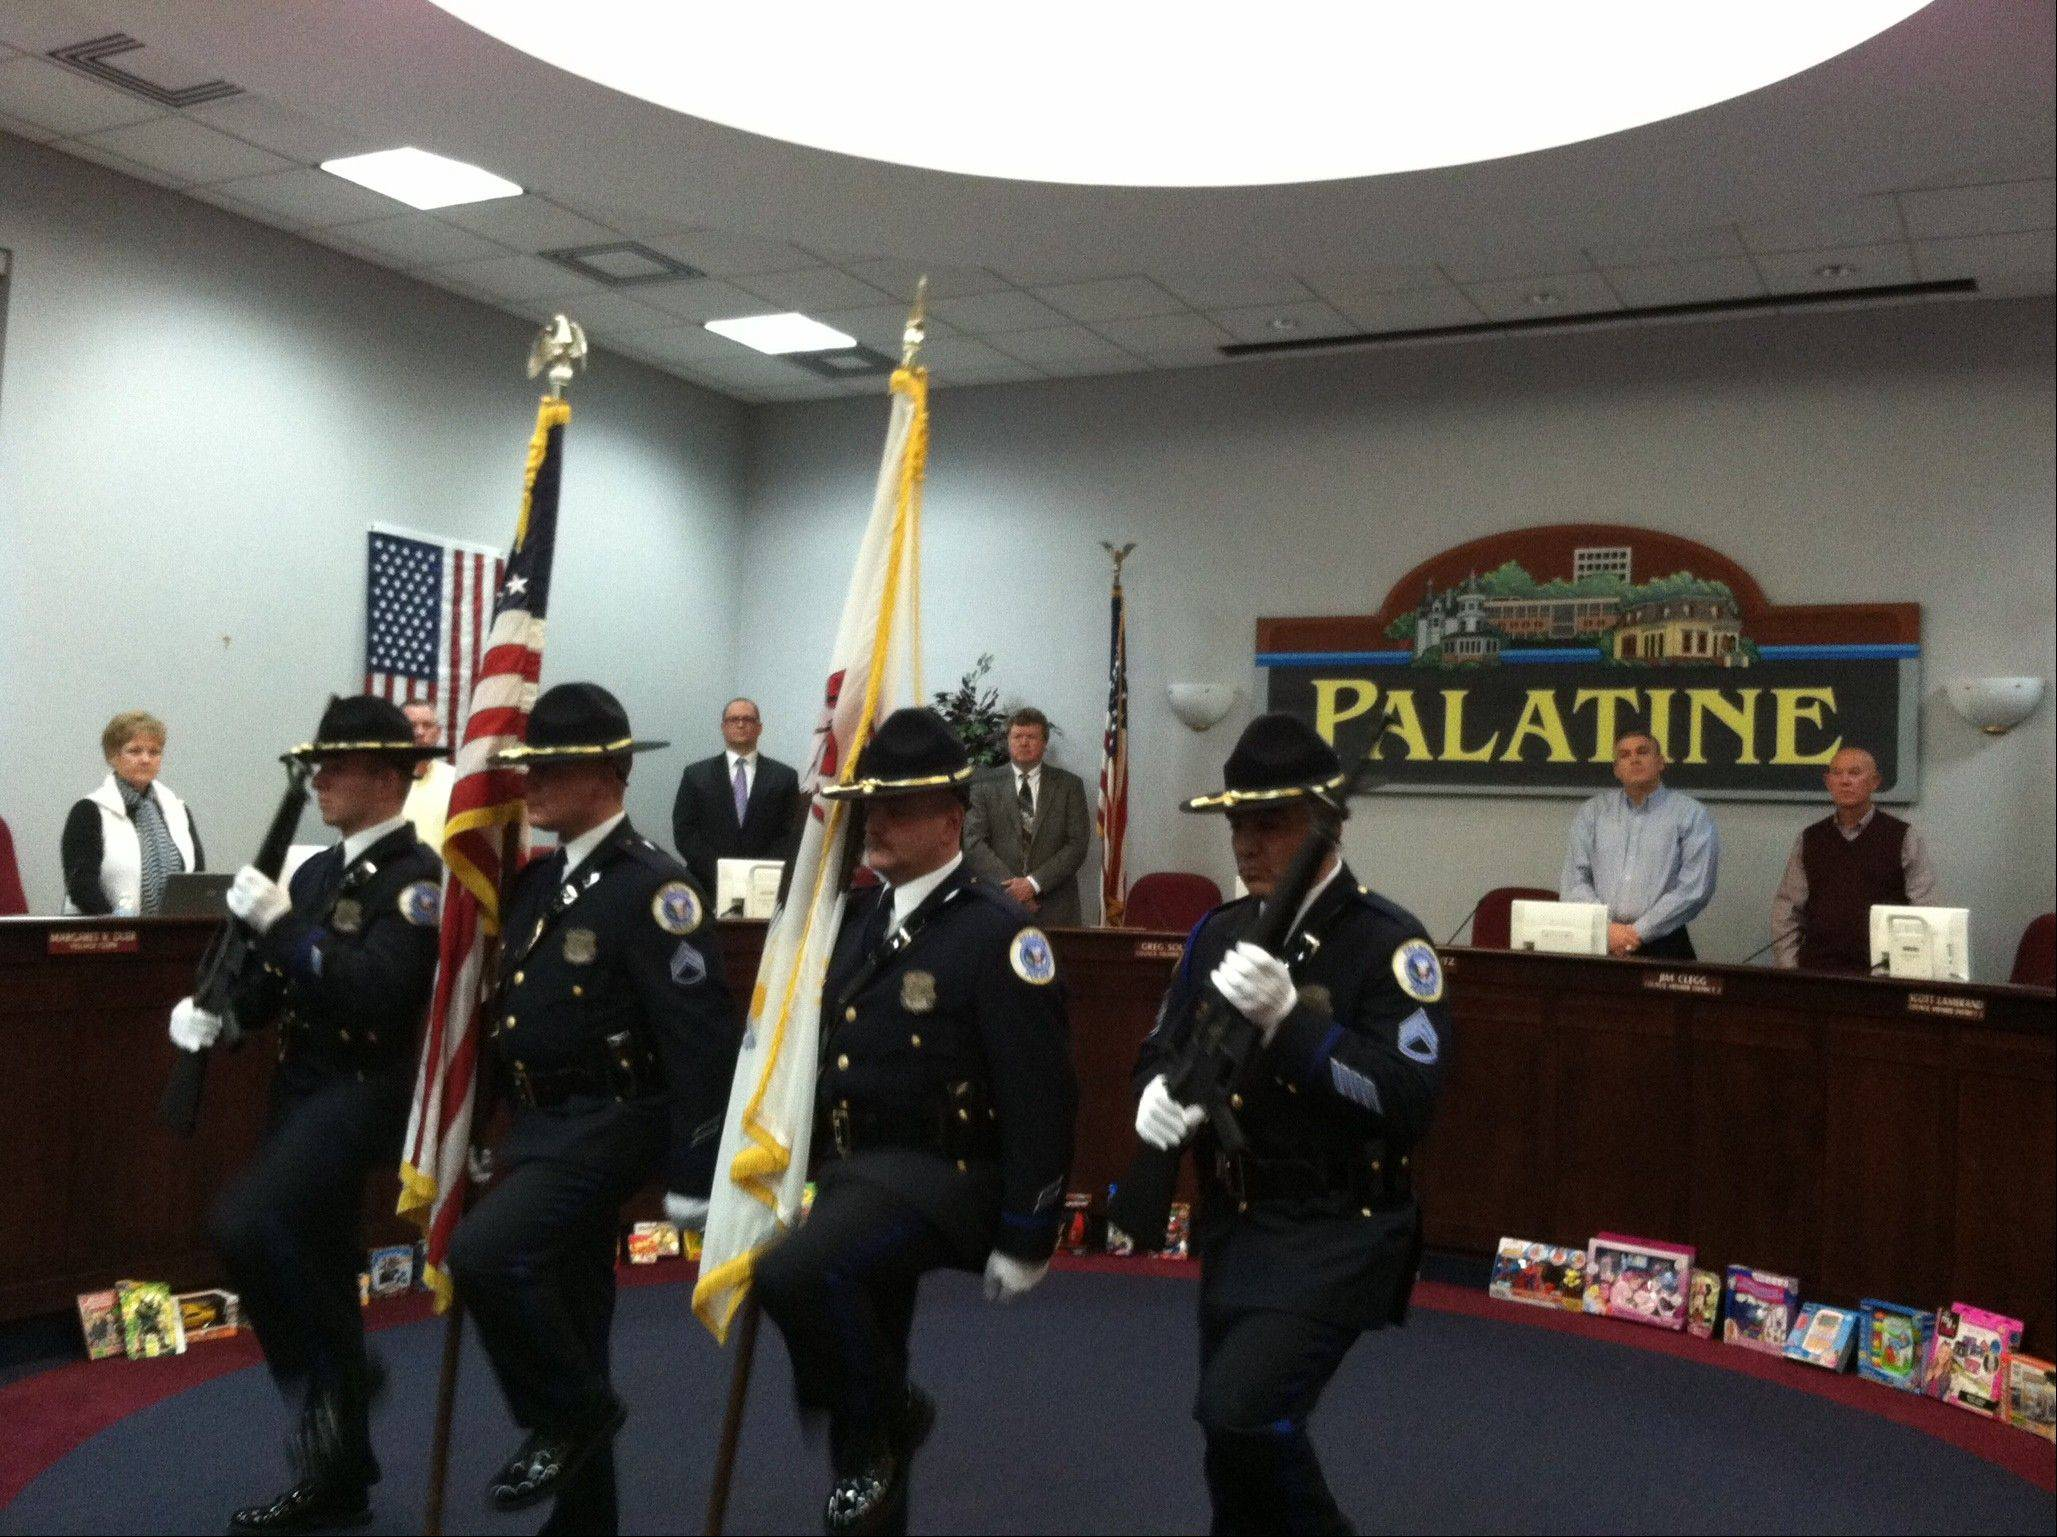 The Palatine police color guard leads the Pledge of Allegiance in honor of Pat and Mac McCoy, who were recognized by village leaders this week for their founding of the Yellow Ribbon Support Group. During its 10 years, the organization sent more than 28,000 care packages to troops serving overseas.